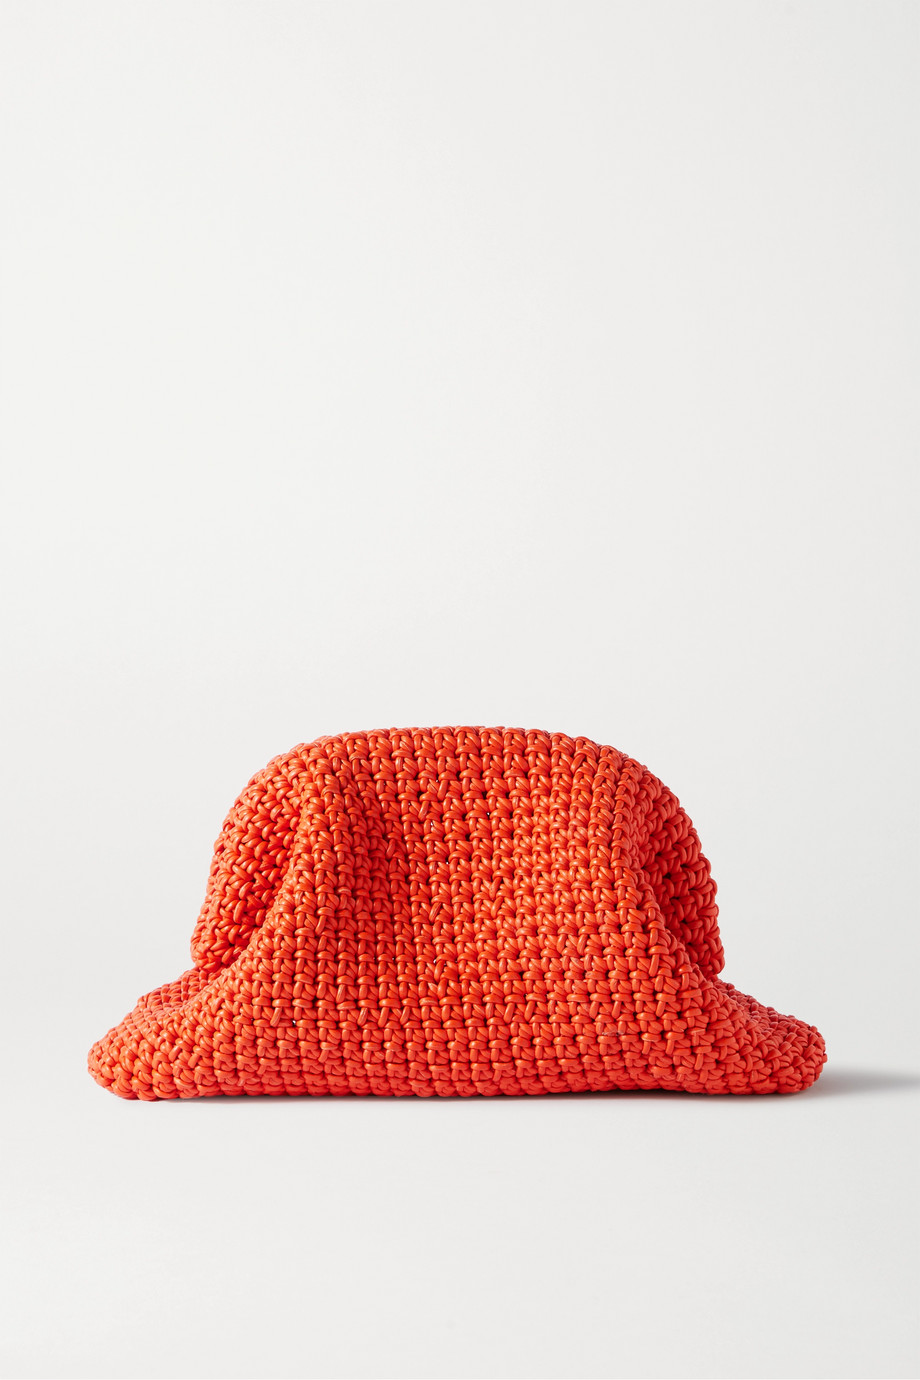 BOTTEGA VENETA The Pouch large crocheted leather clutch